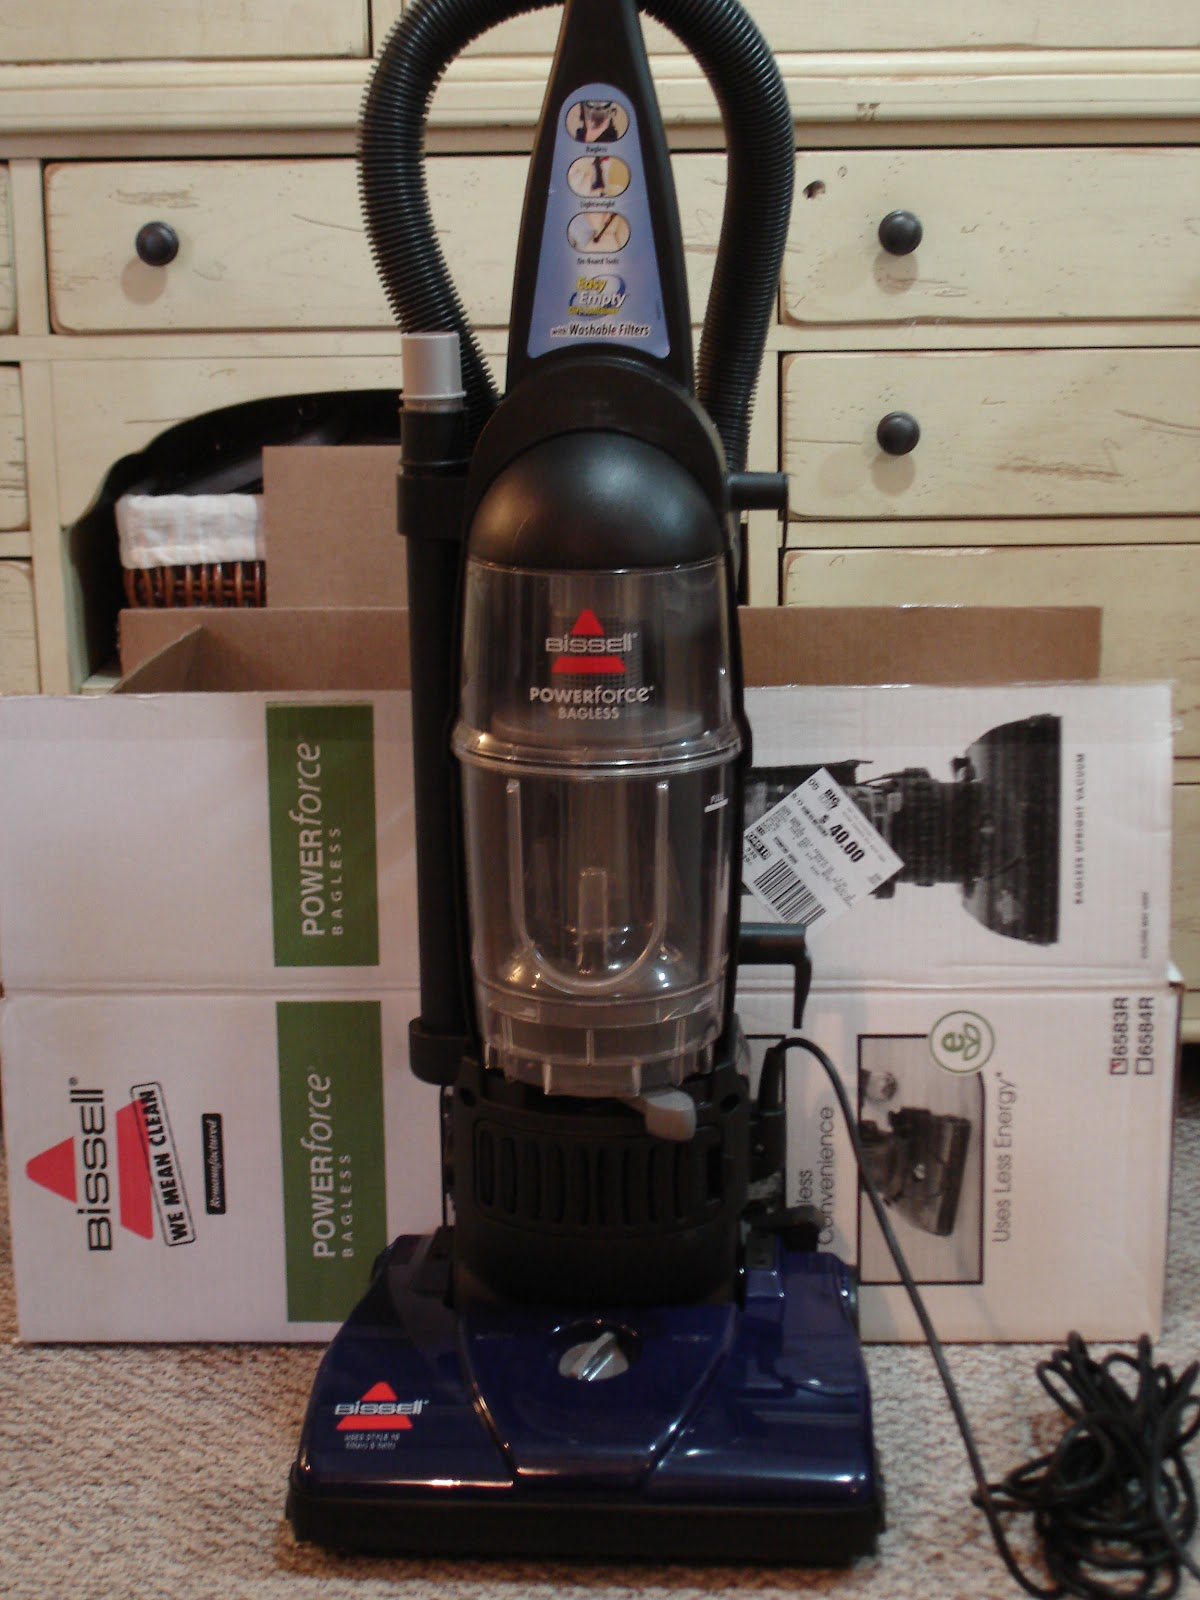 bissell powerforce vacuum review - Bissell Vacuum Cleaners